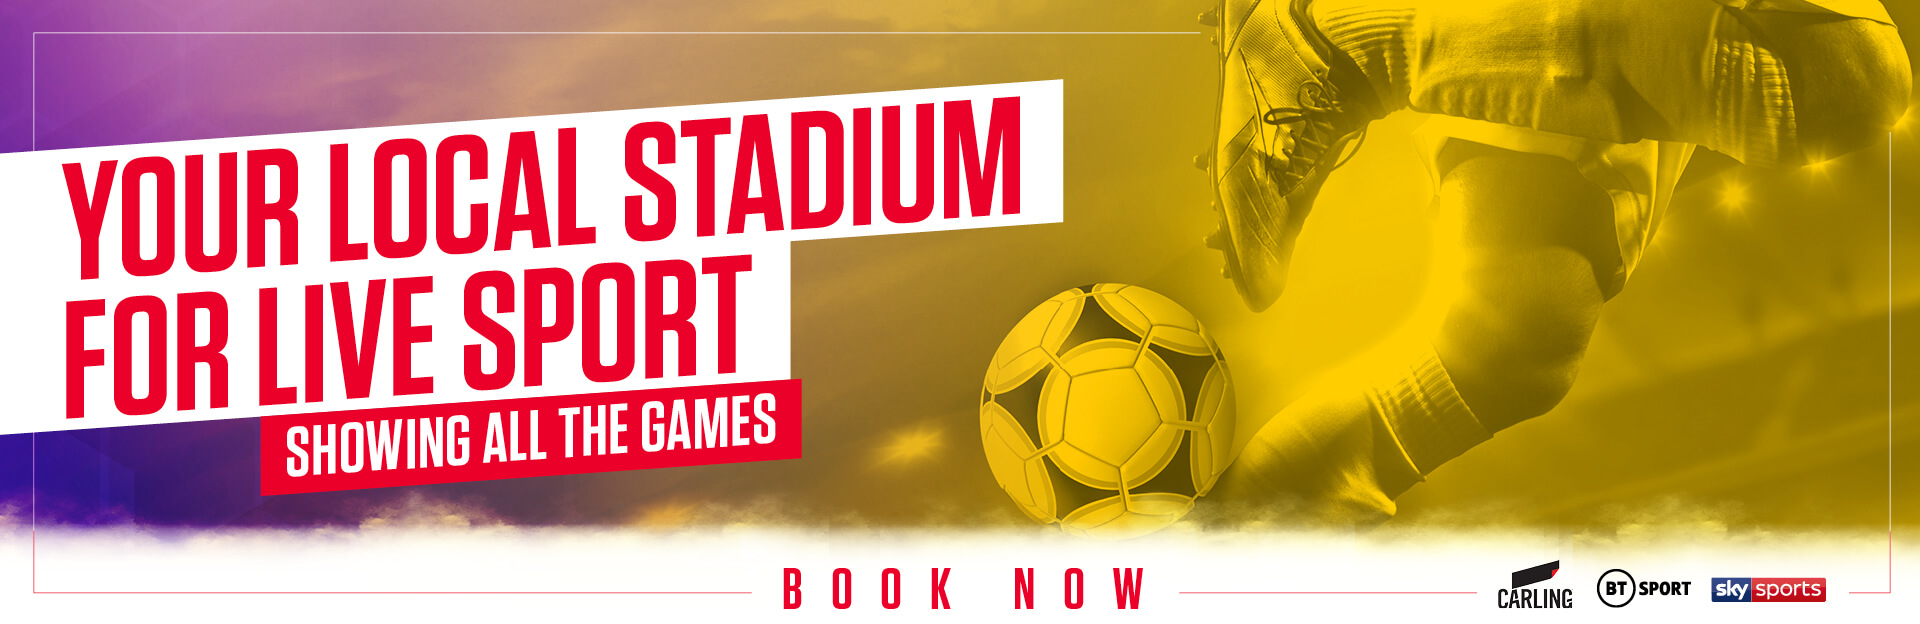 Live Sports at Sizzling Pubs